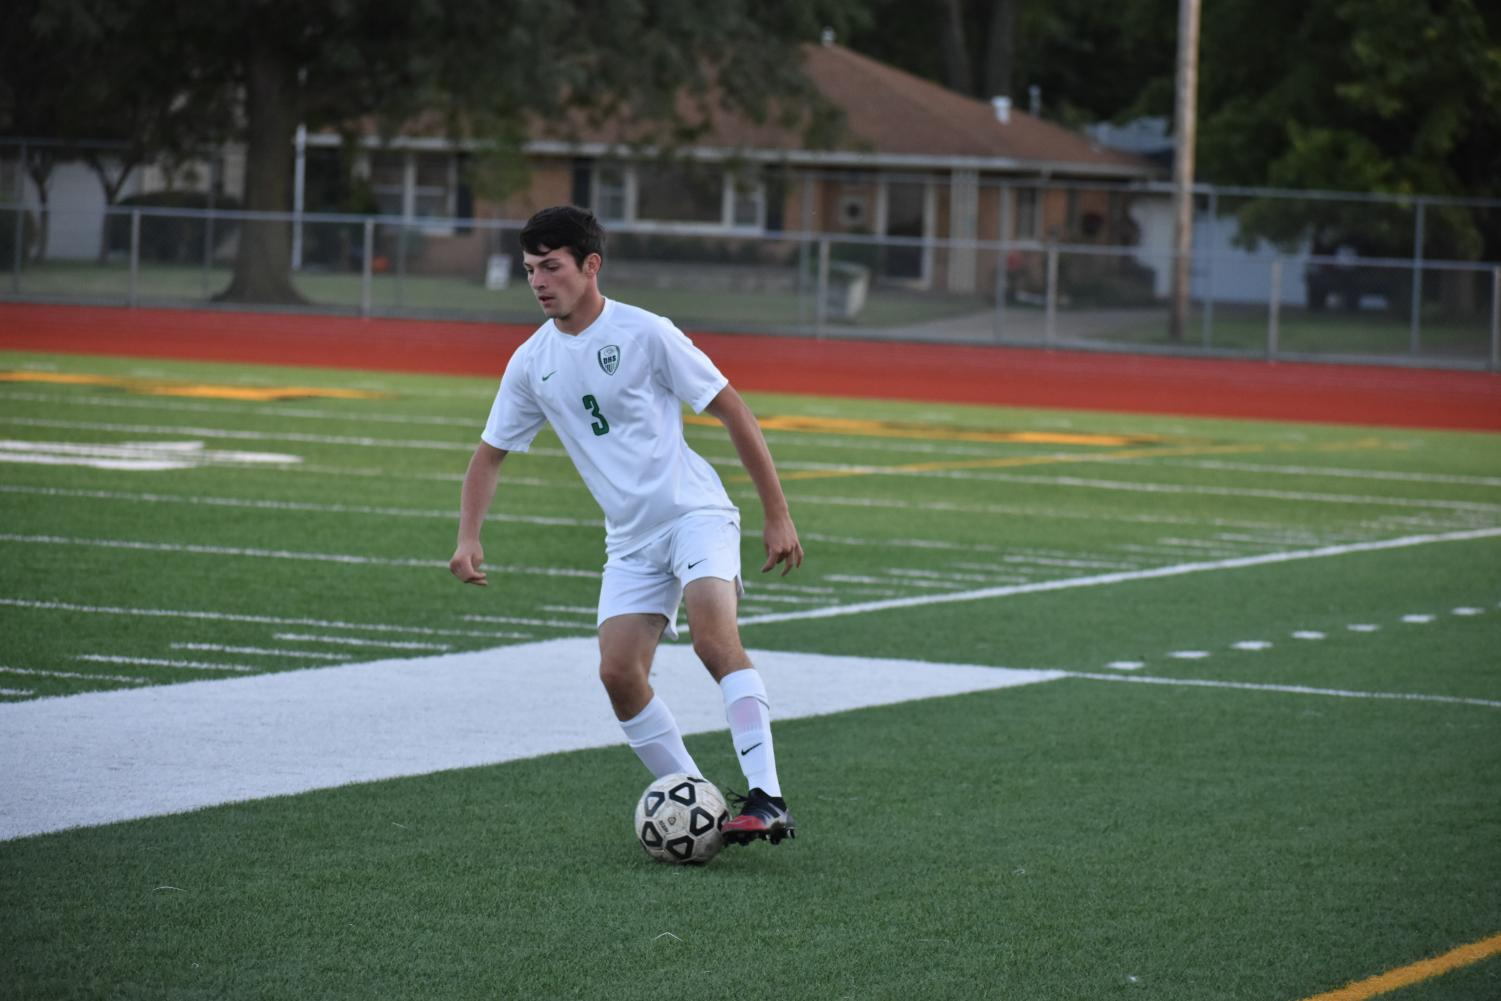 Boys+varsity+soccer+vs+Salina+South+%28Photos+by+Damien+Matmanivong%29